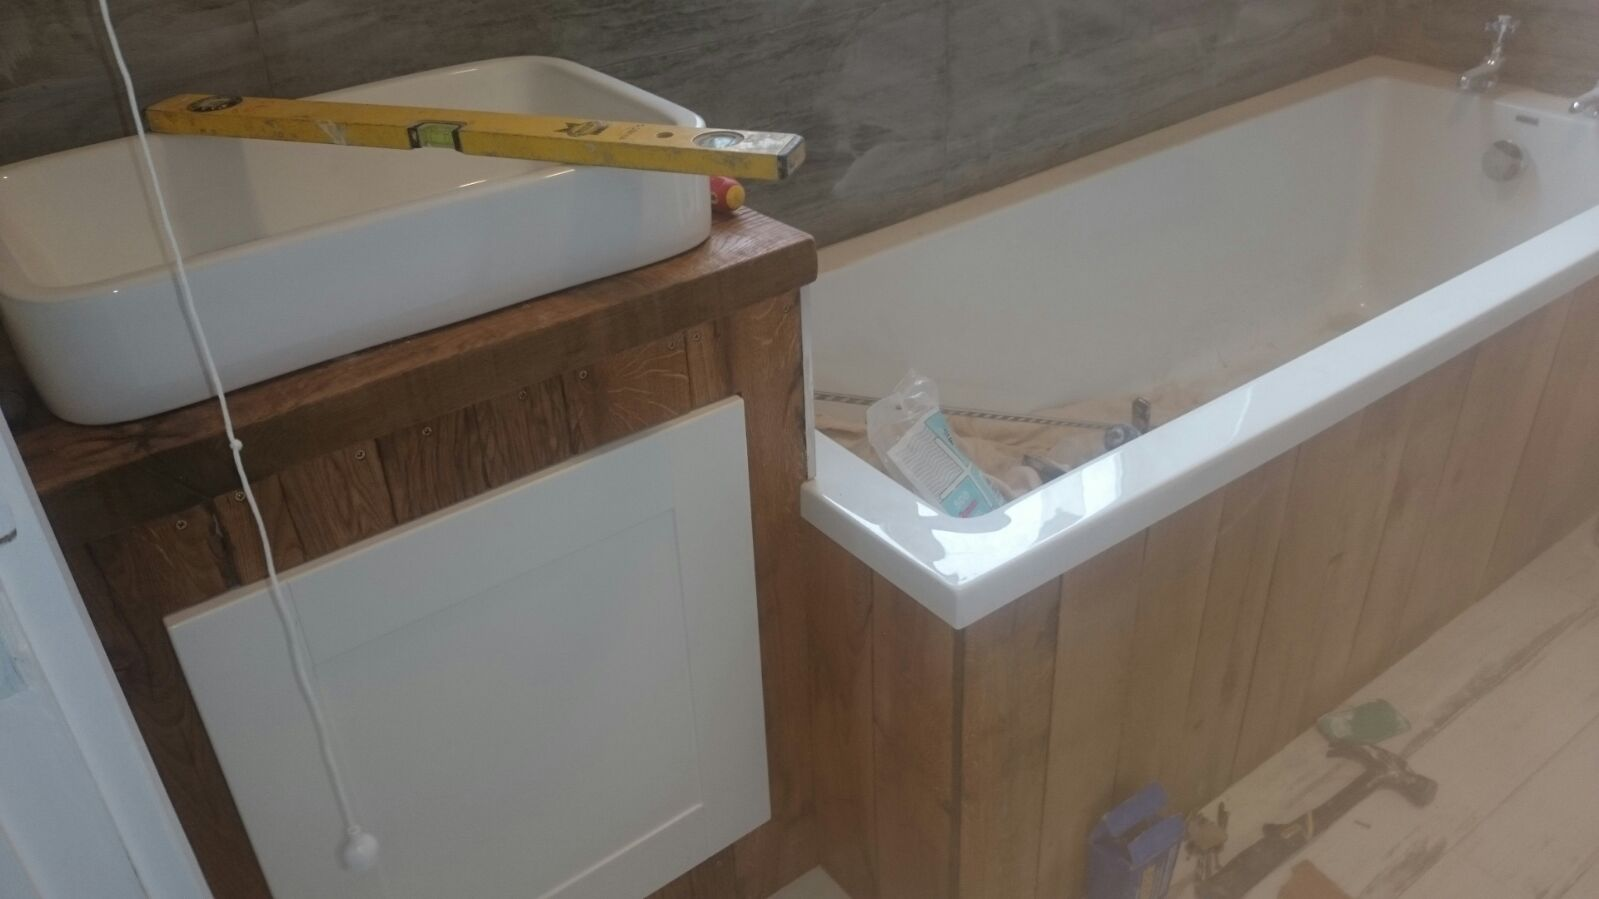 Fitting the door under the sink unit